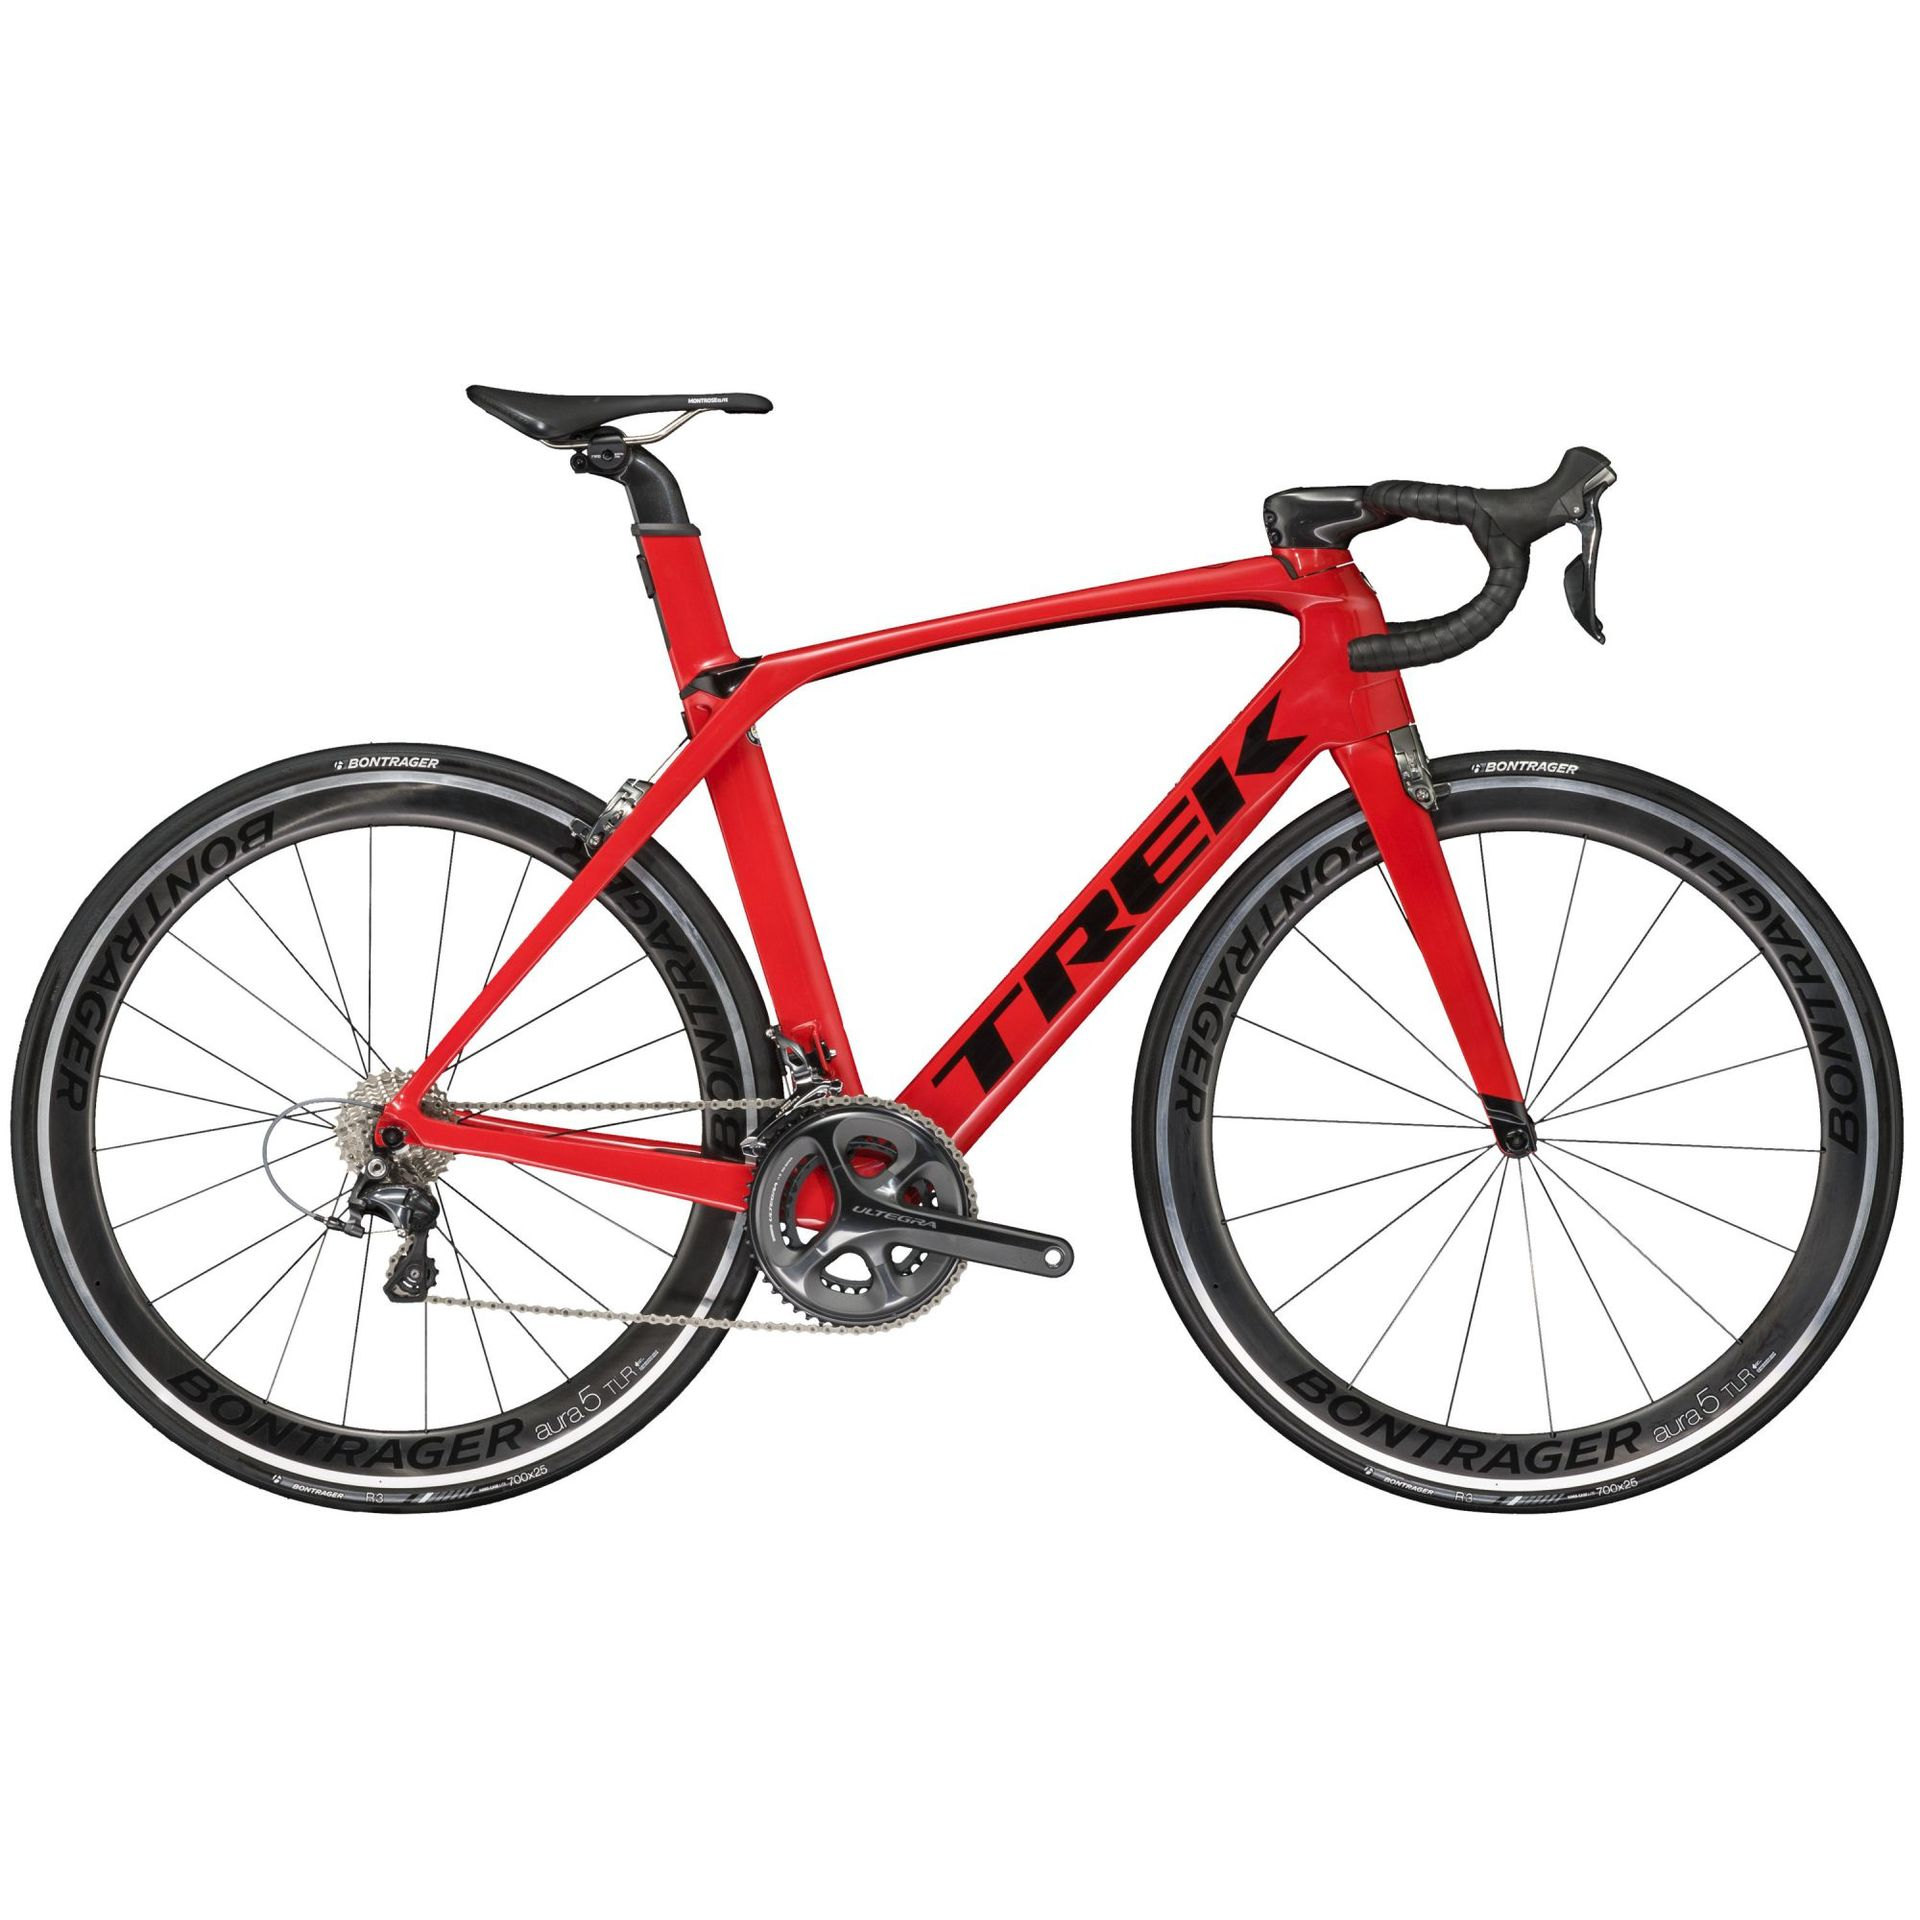 ROWER TREK MADONE 9.2 C H2 2017 28 Viper Red Trek Black 1